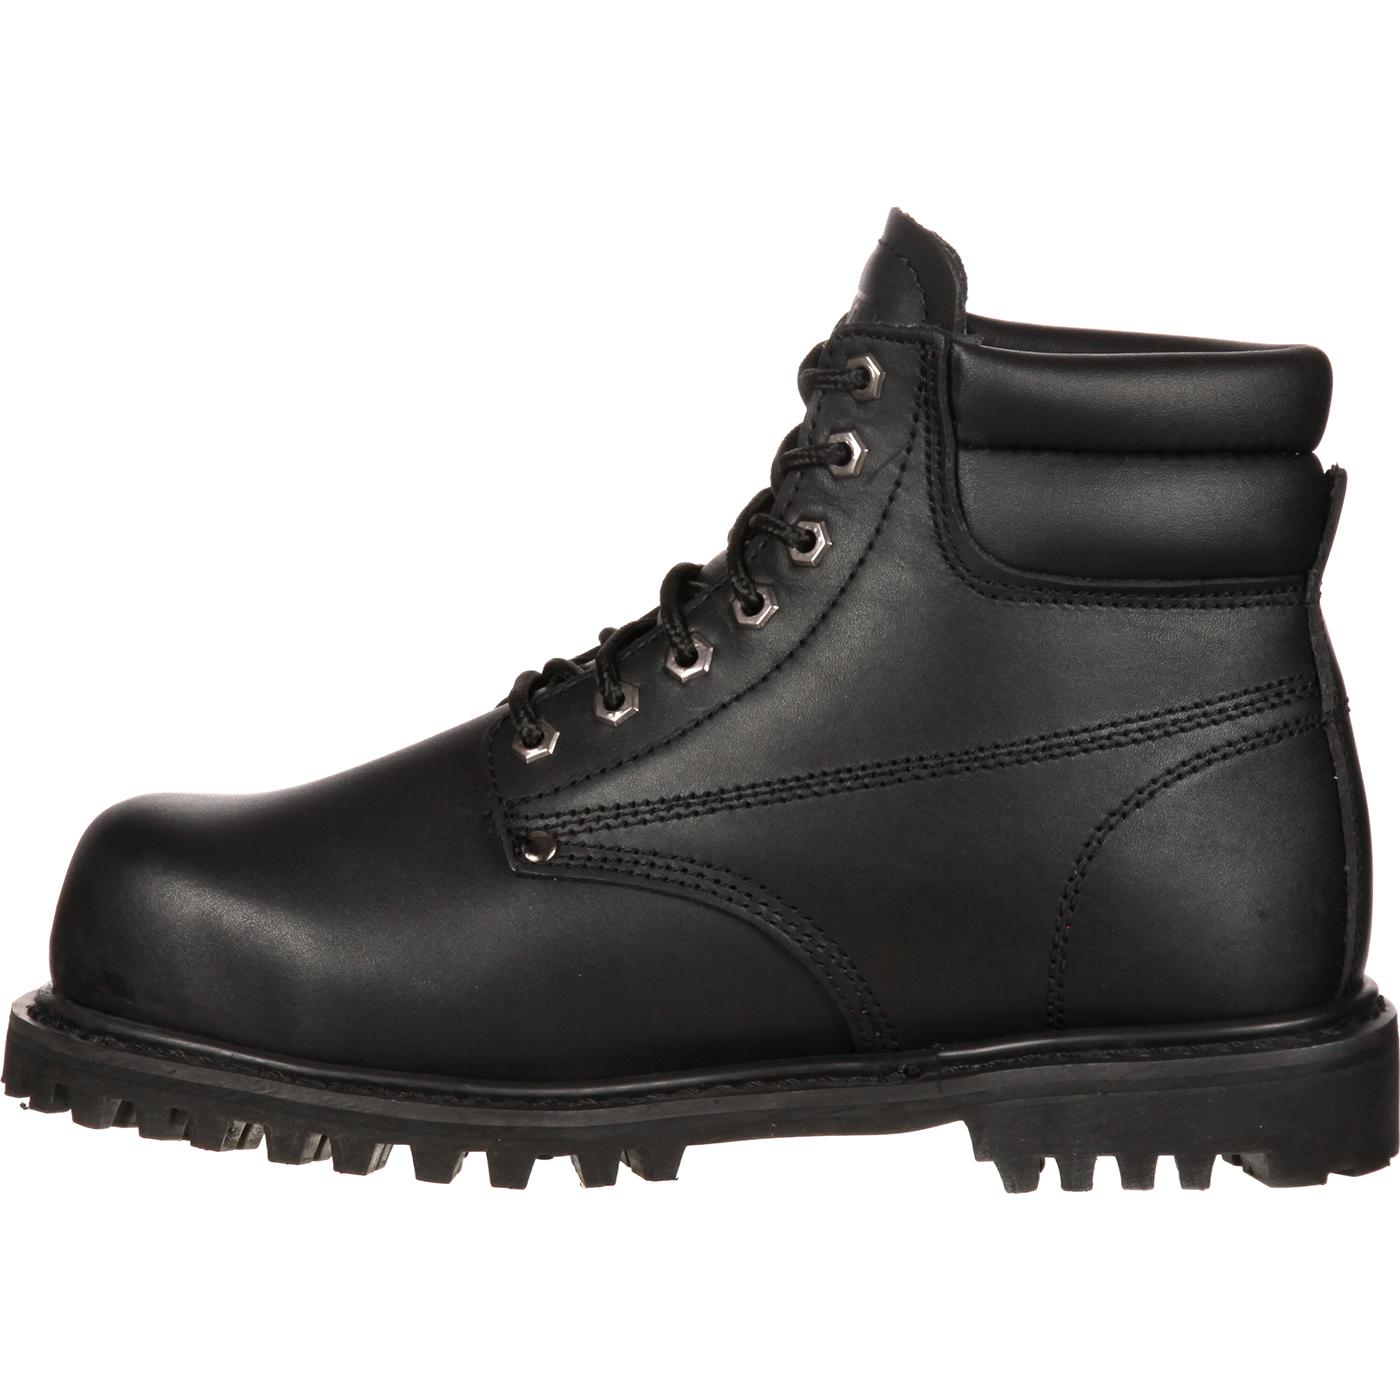 6 Black Steel Toe Work Boots Lehigh Safety Shoes 5236